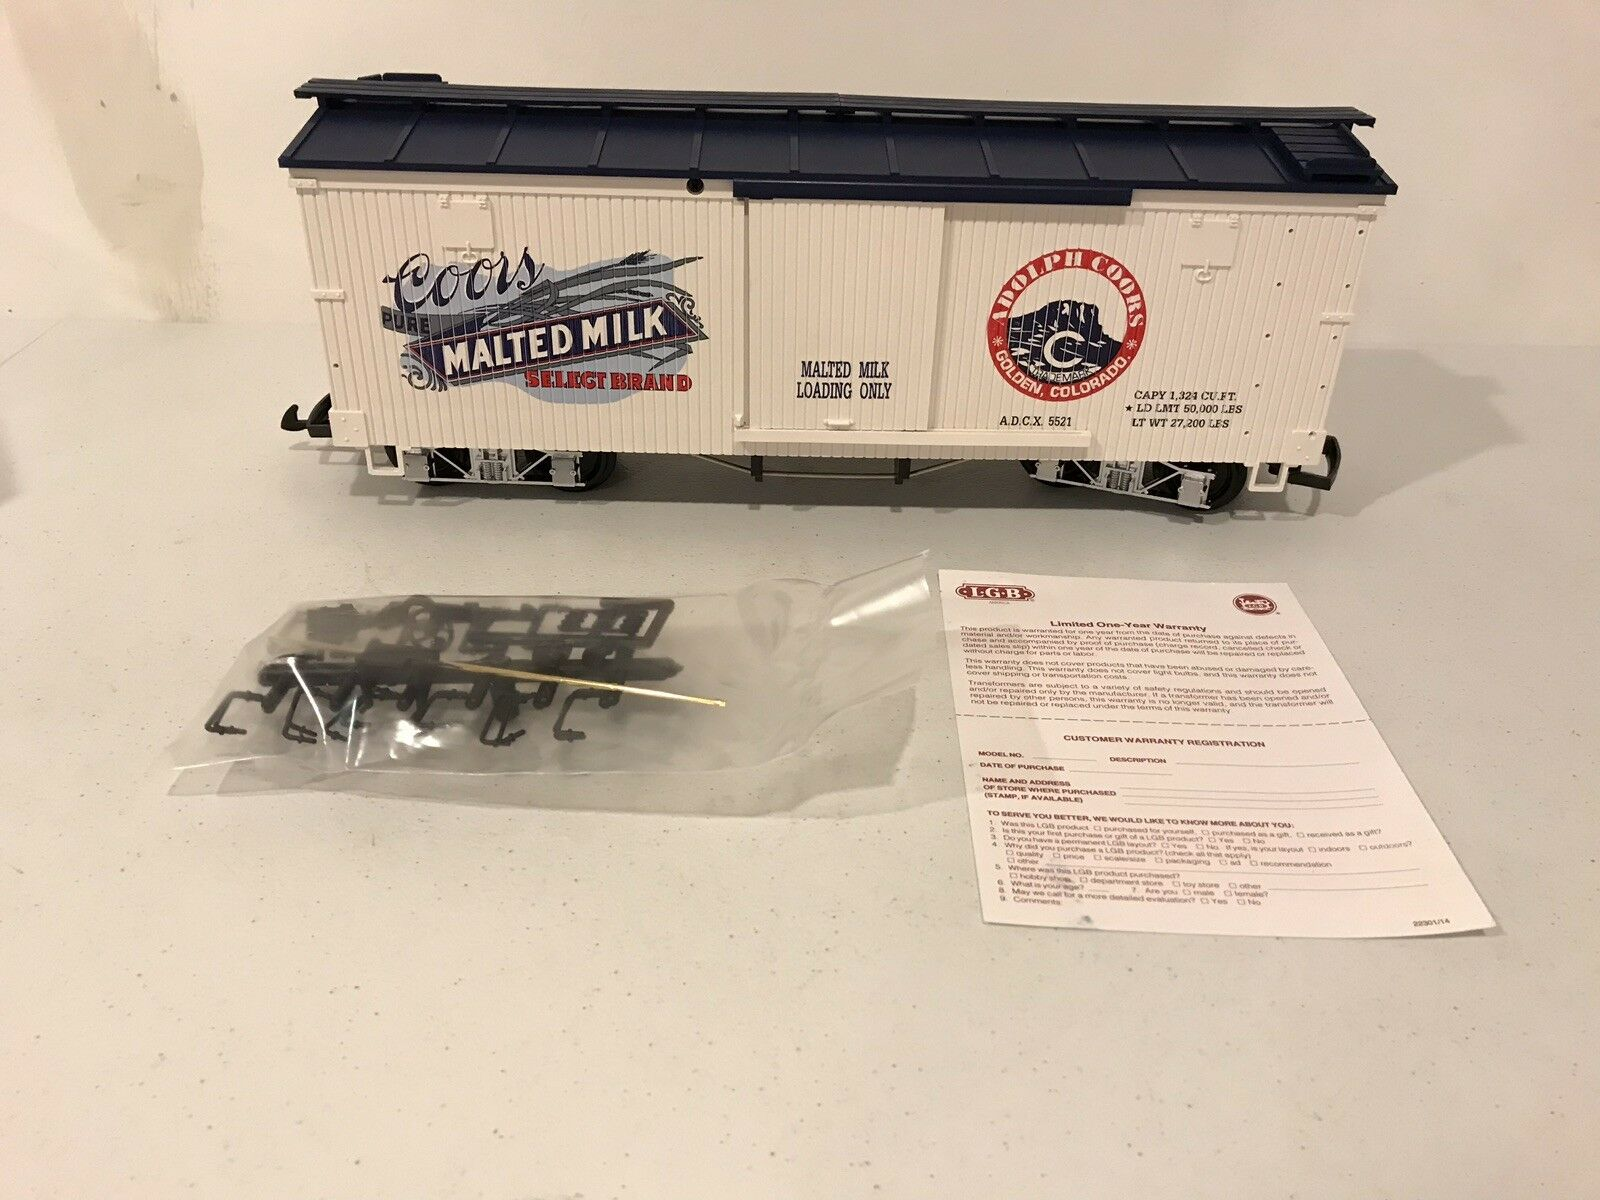 LGB 46670 Coors Malted Milk Box Car Collection Item